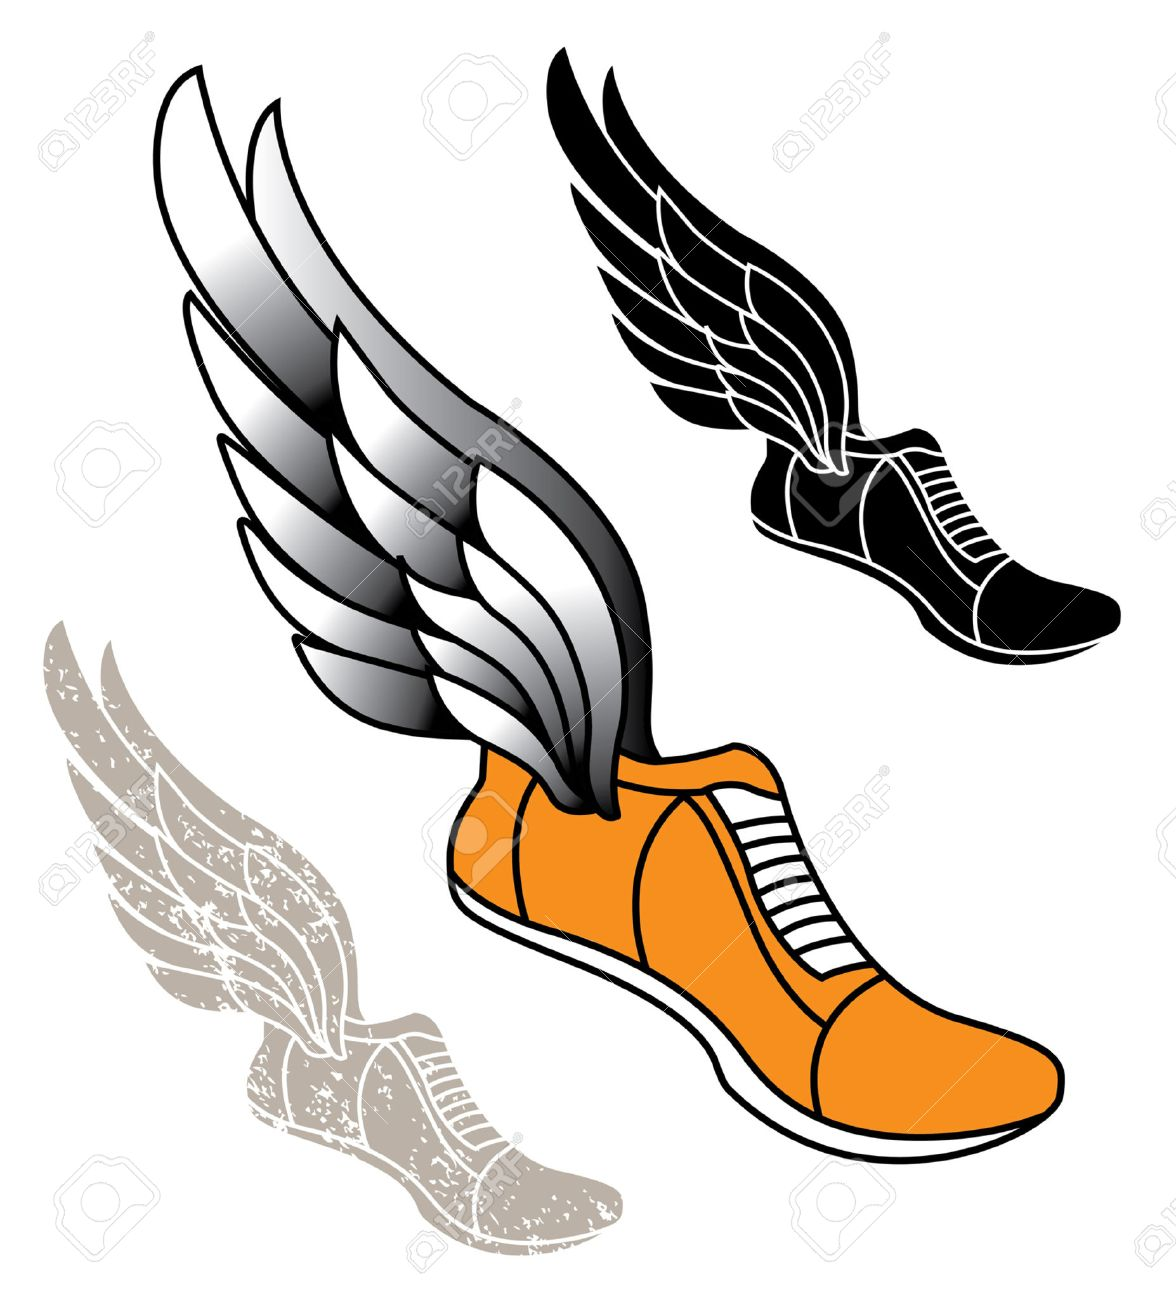 track athletic sports running shoe logo with wings royalty free rh 123rf com shoe with wings logo company shoe with wings logo yellow